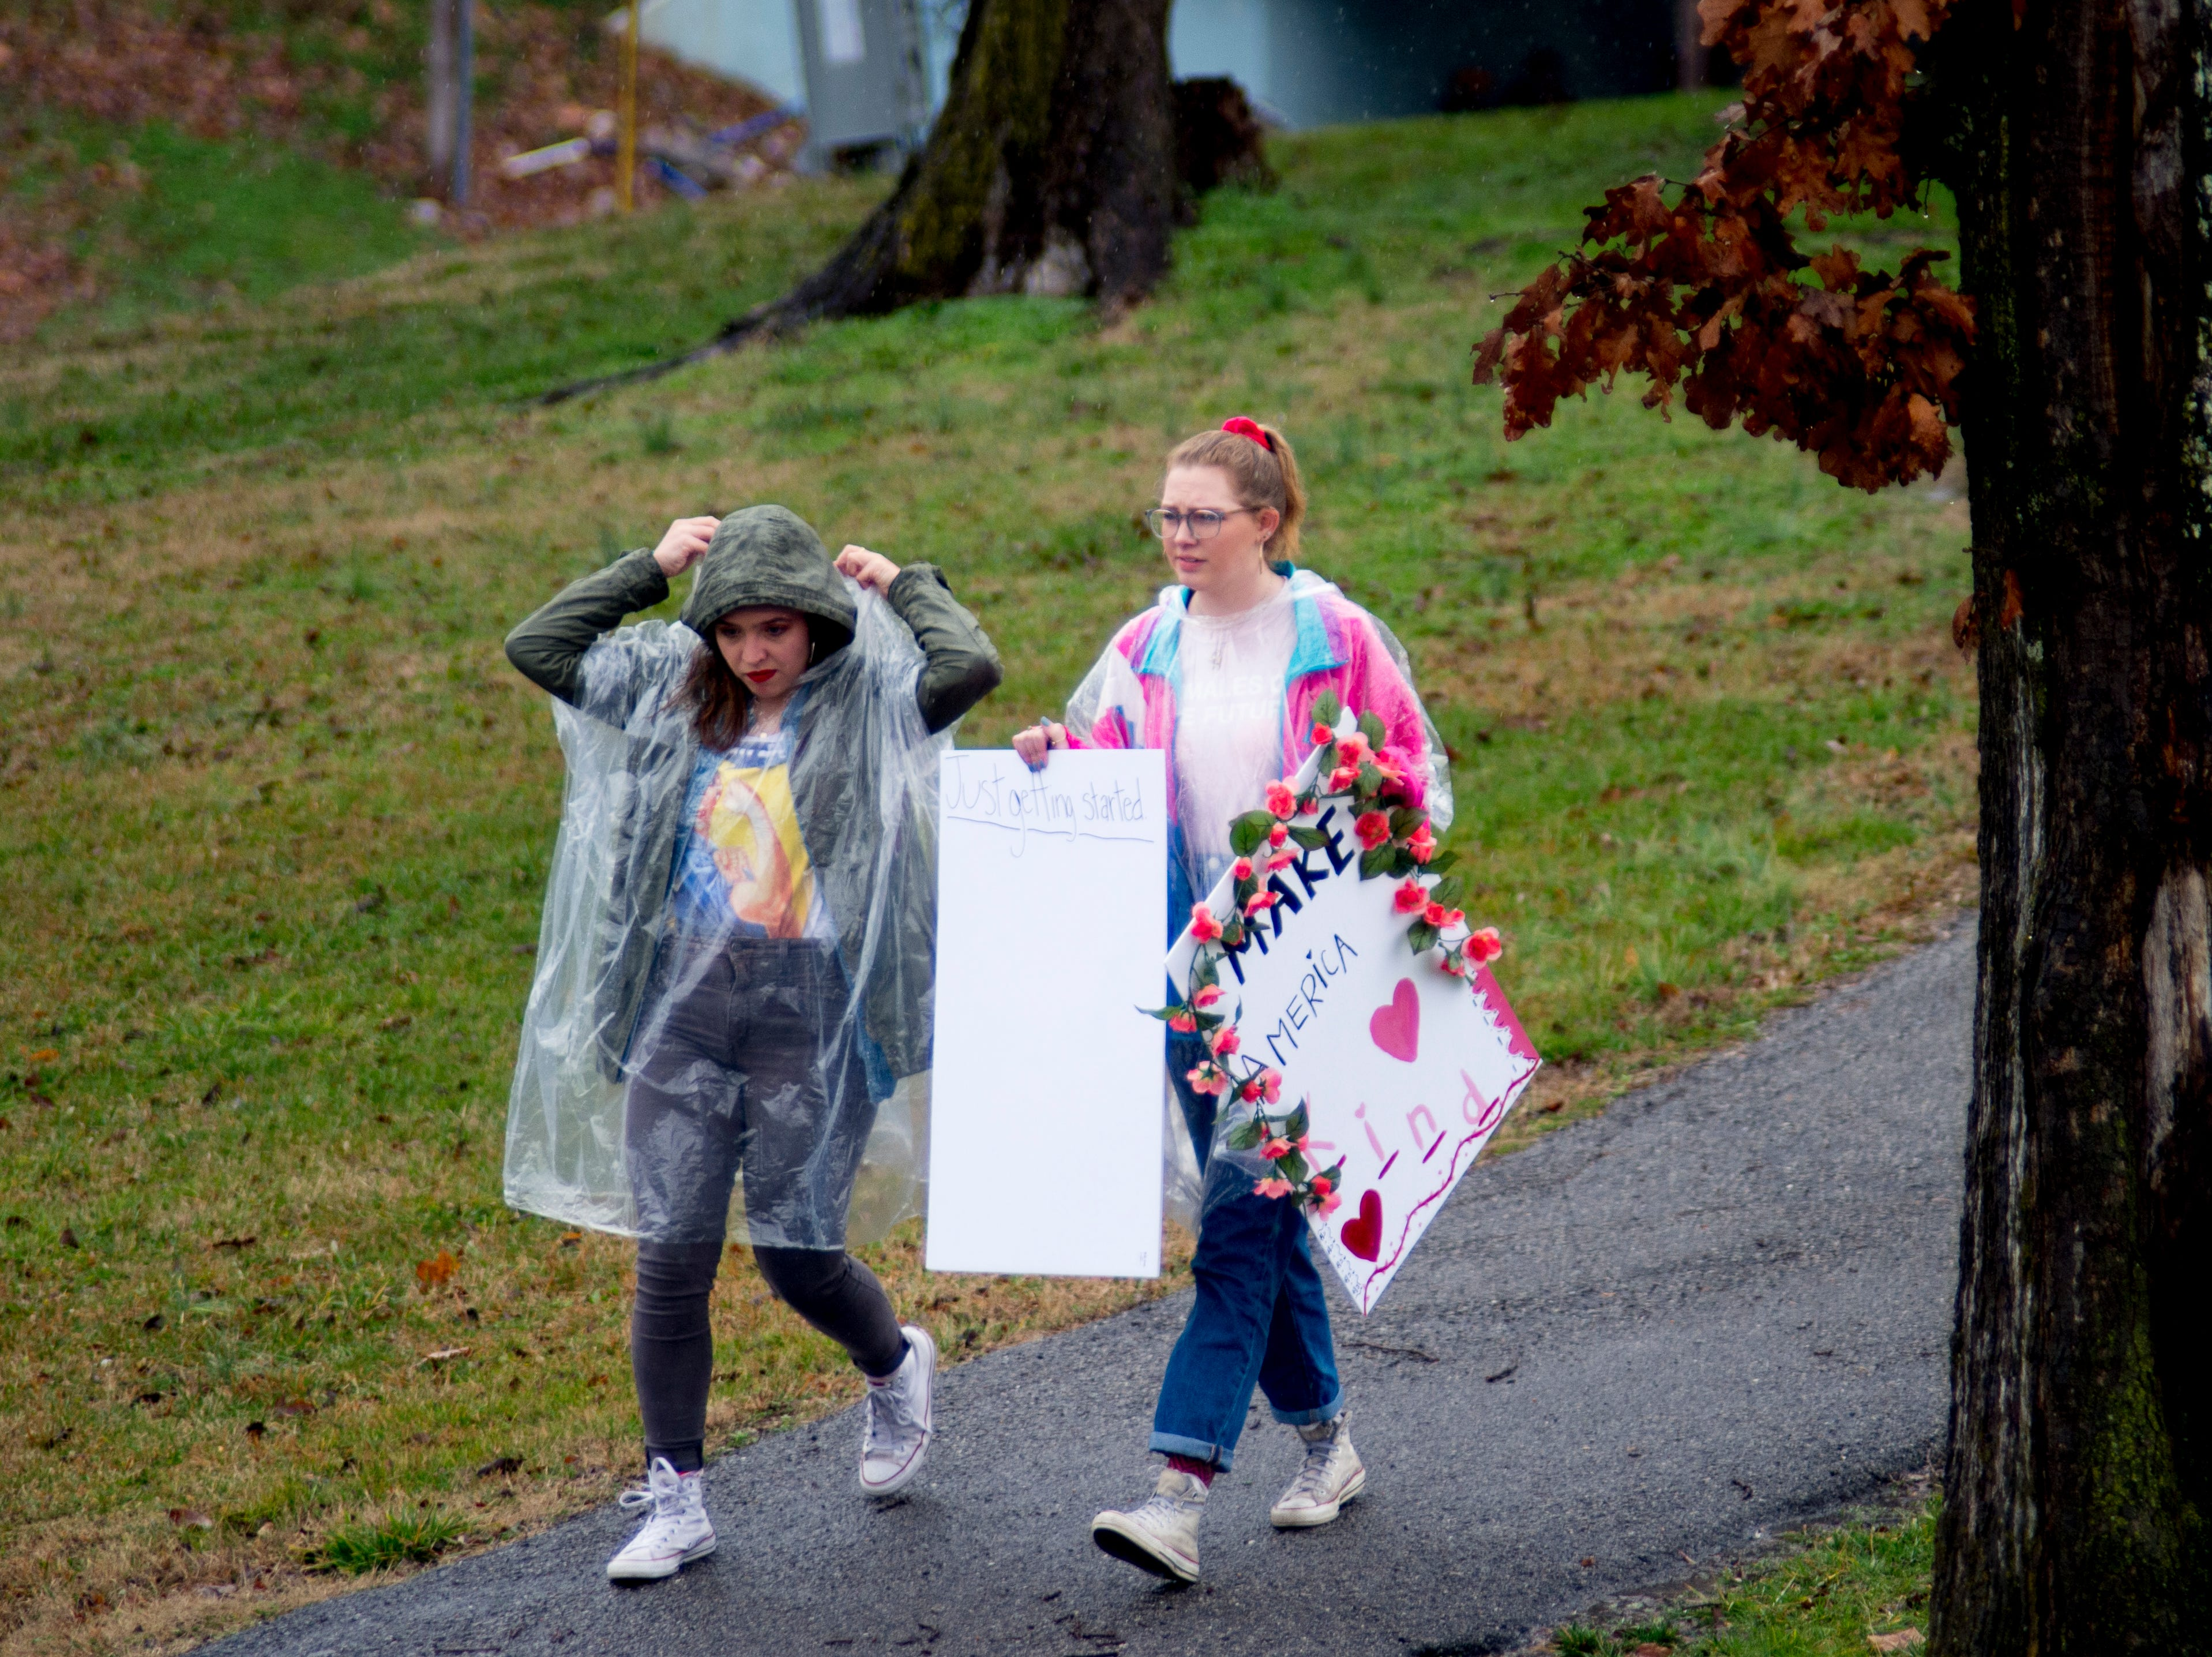 Demonstrators walk through the rain at the 2019 Knoxville Women's March at Chilhowee Park in Knoxville, Tennessee on Saturday, January 19, 2019.